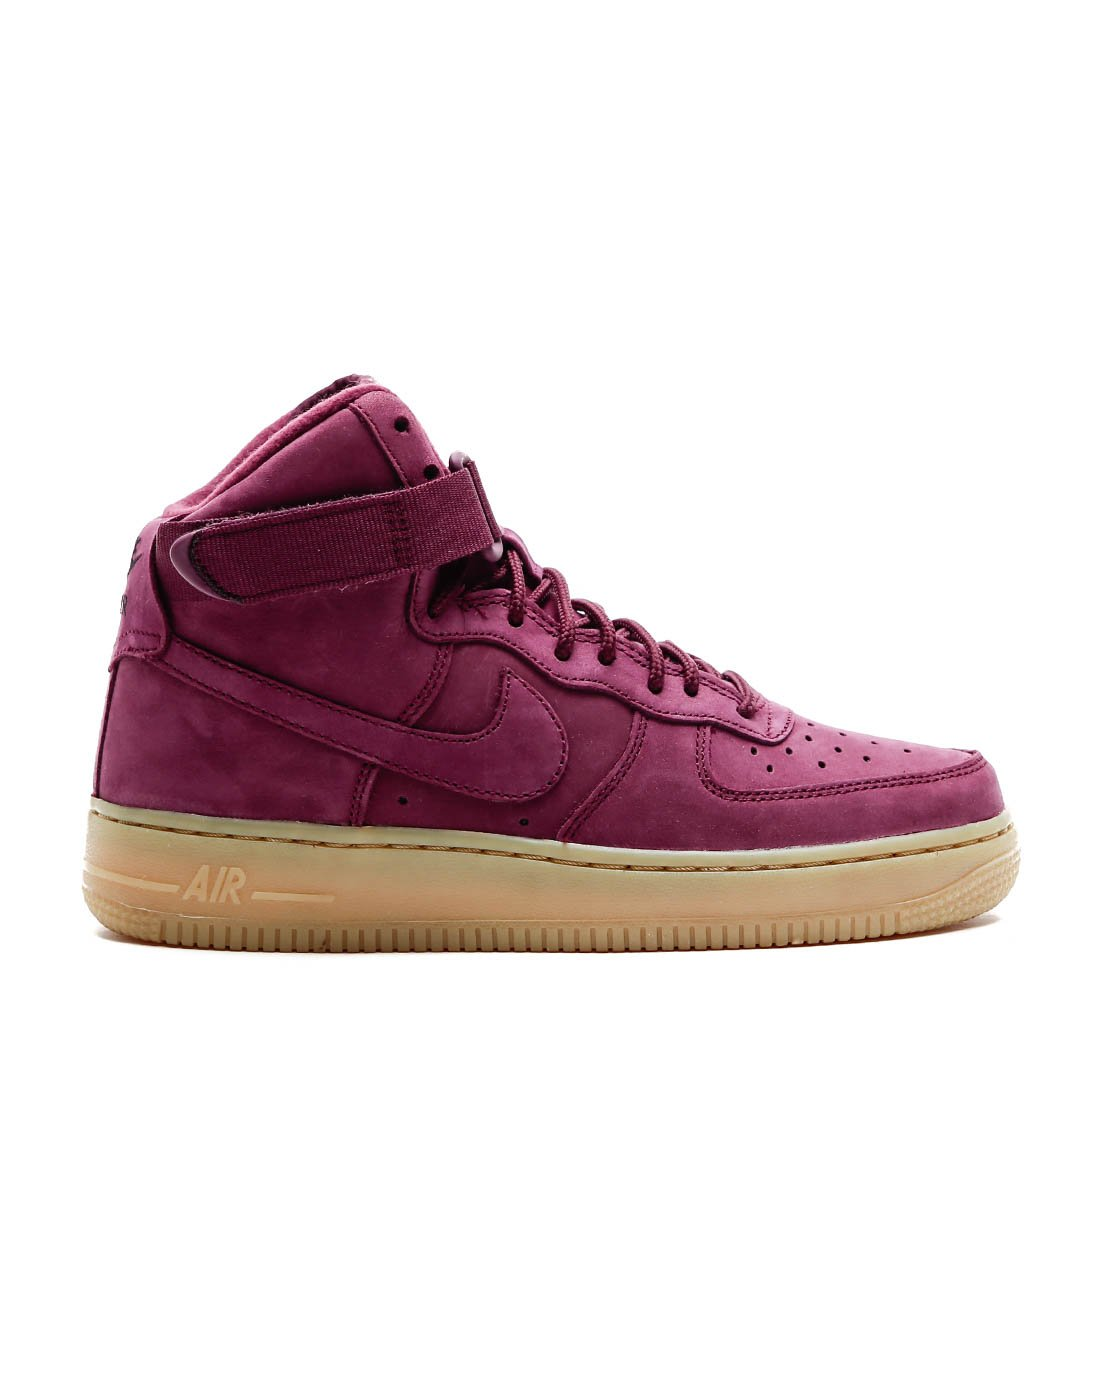 Galleon - Nike AIR Force 1 HIGH WB (GS) Girls Fashion-Sneakers 922066-600 5Y  - Bordeaux Bordeaux-Gum Light Brown-Black bca5e7392